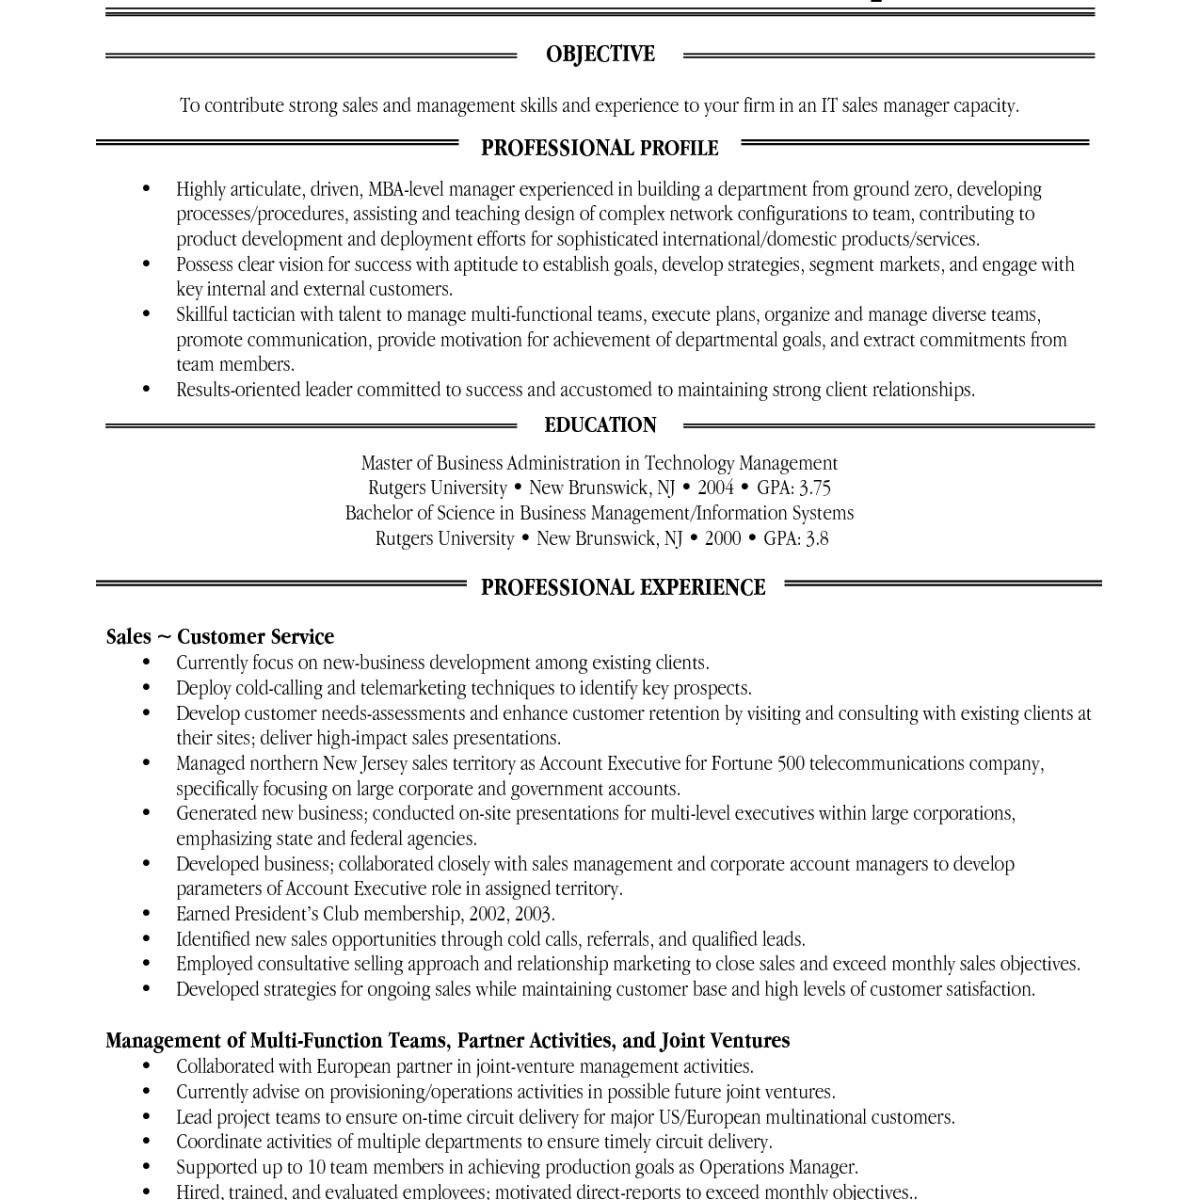 Rutgers Business School Resume Template - 40 Wonderful Chrono Functional Resume Template Graph A9k